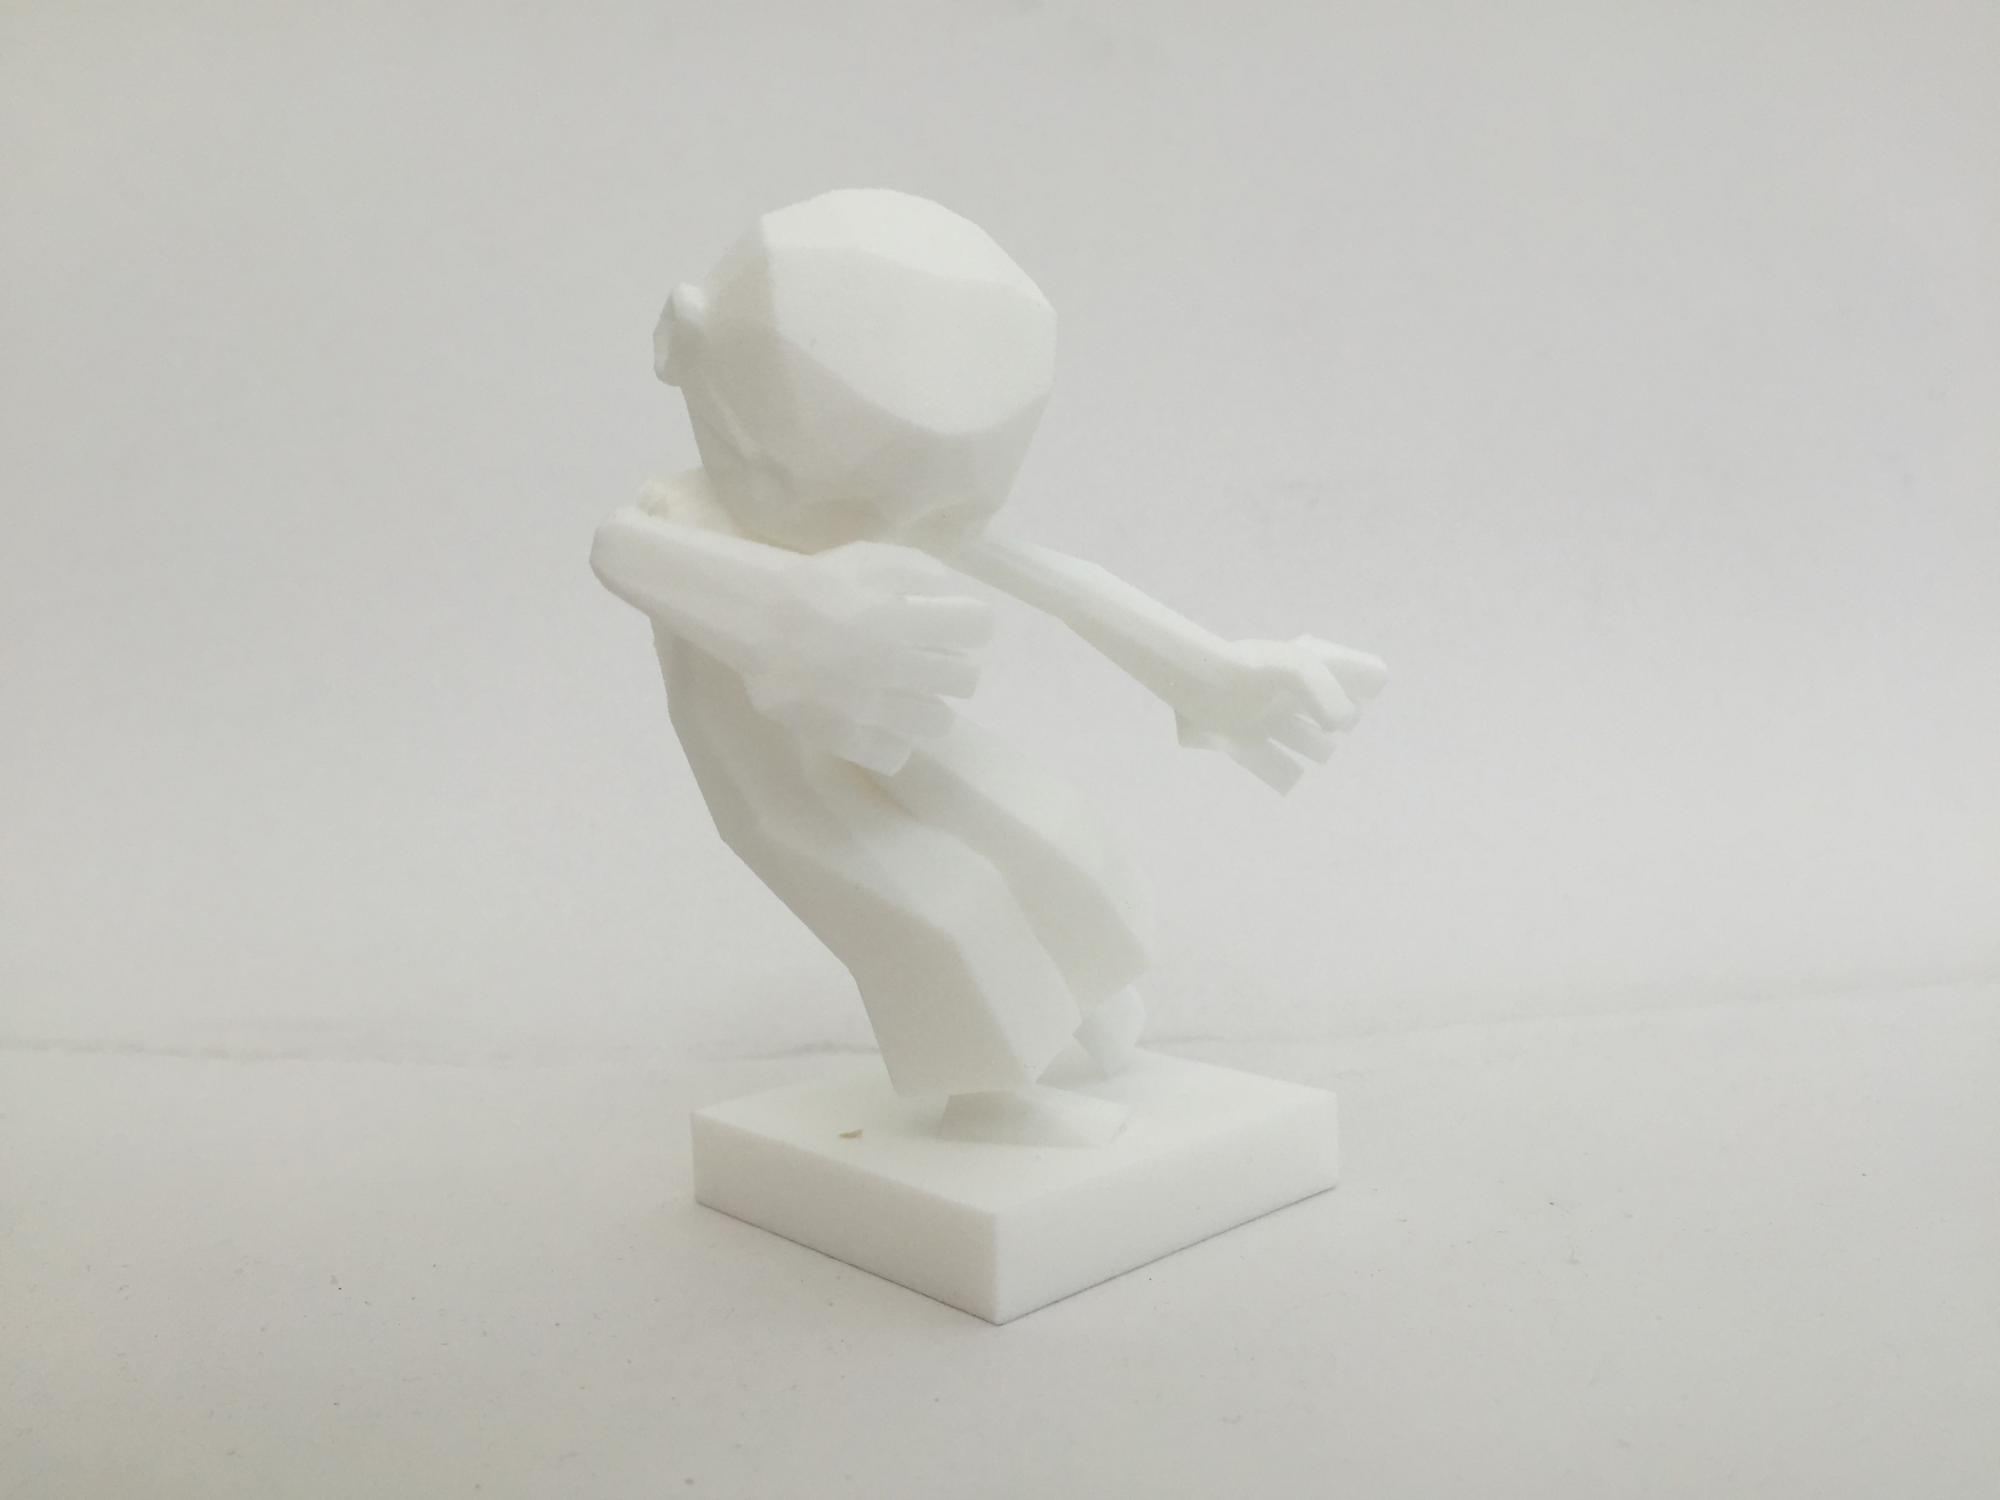 One 'frame' of the 3D animation 3D printed